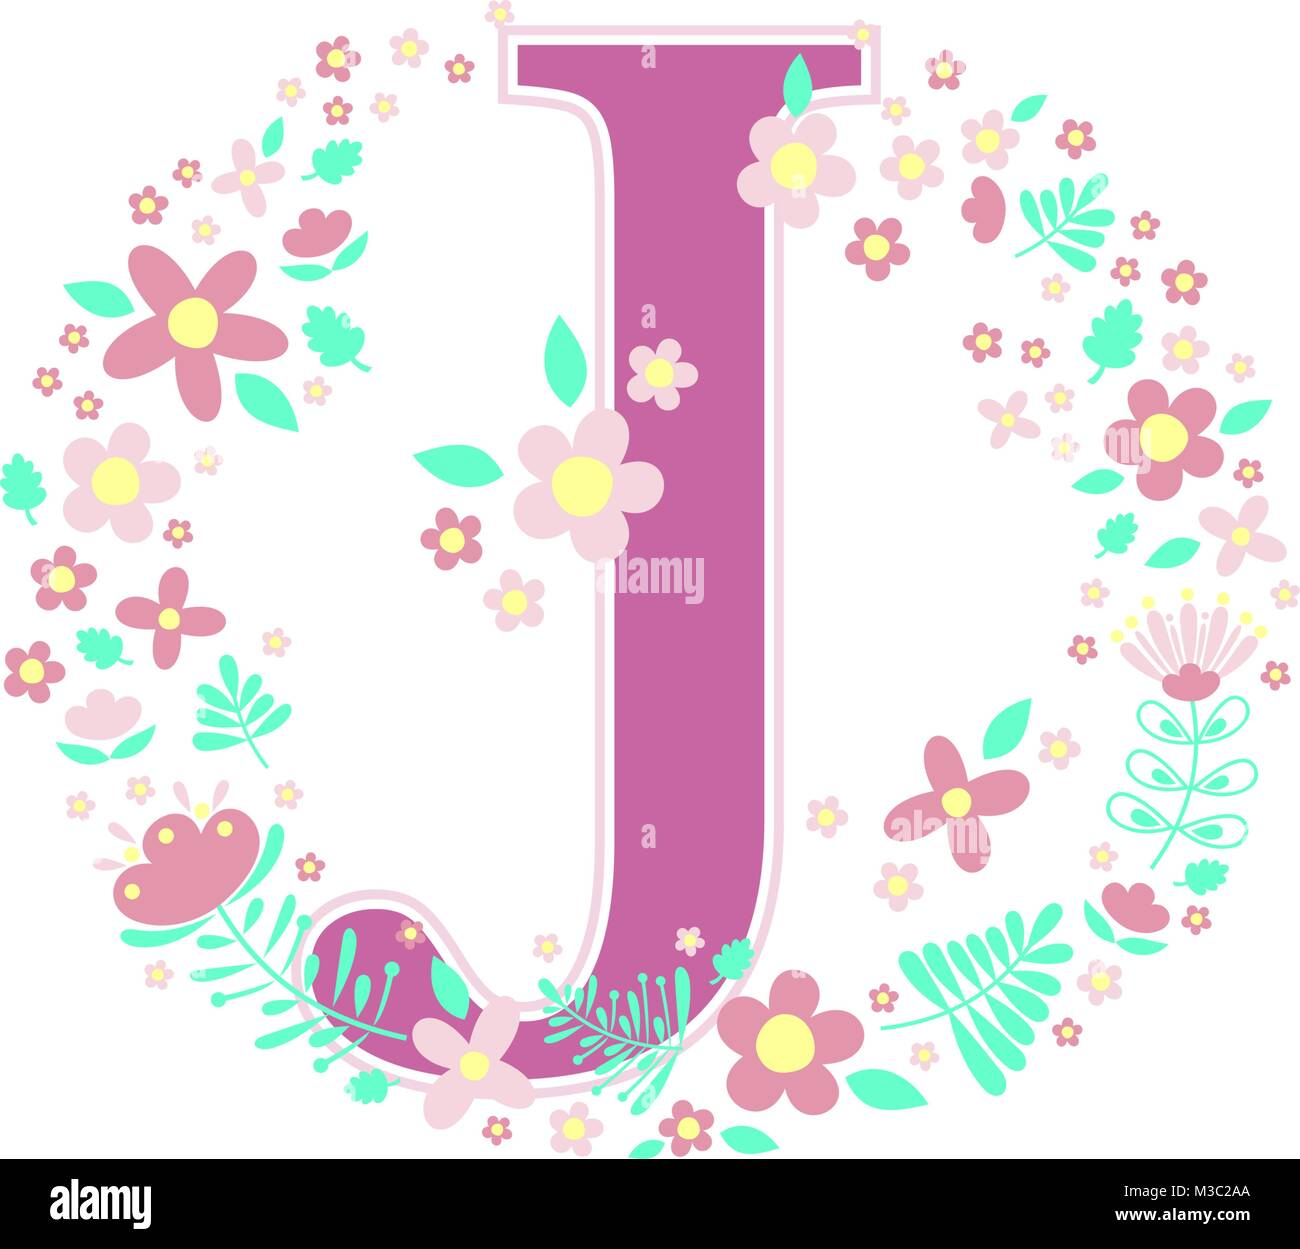 Letter J Stock Vector Images - Alamy